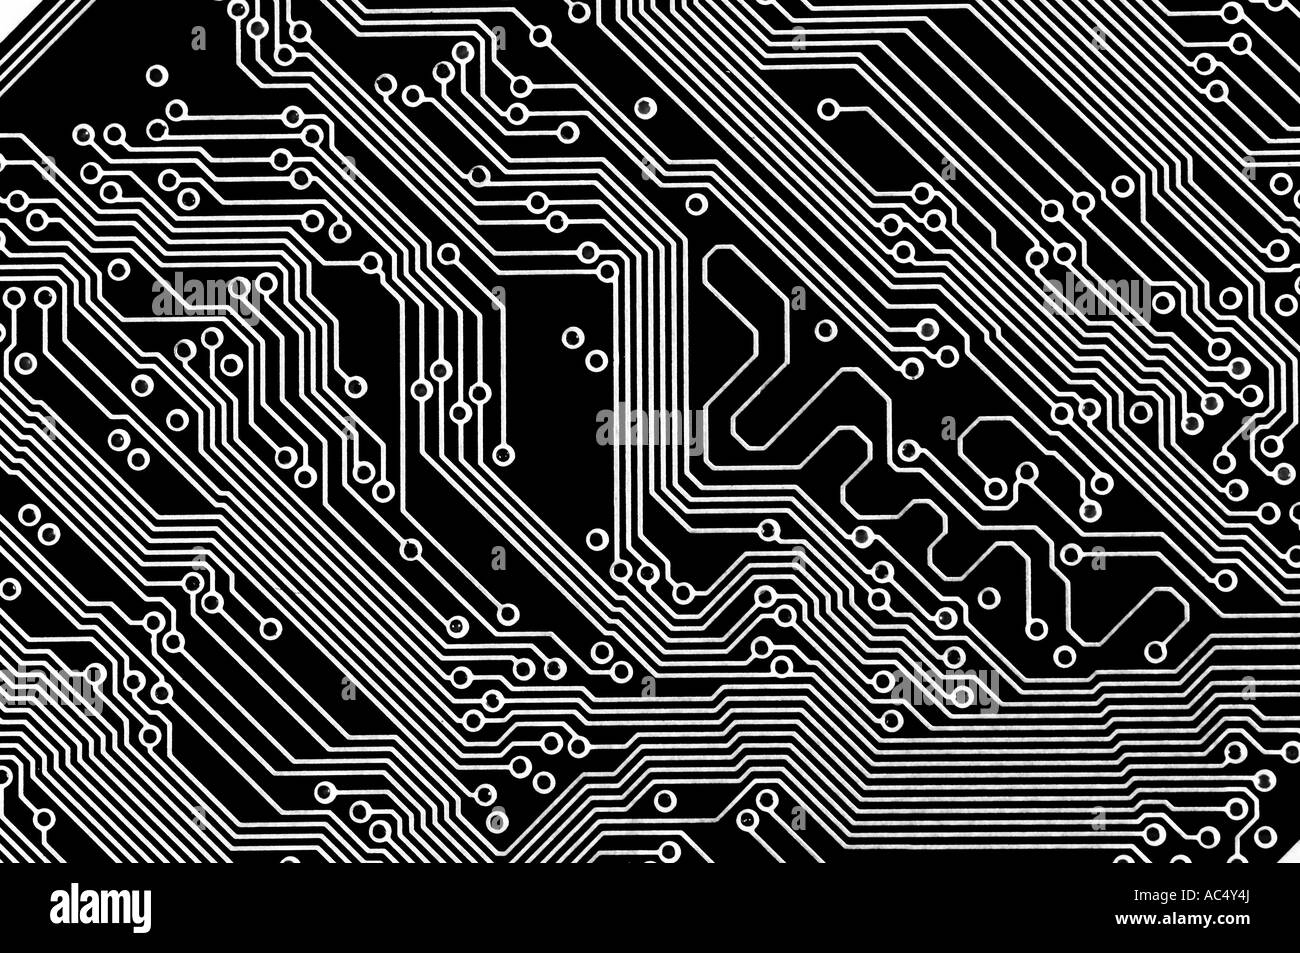 circuit board abstract black and white stock photo 13042337 alamy